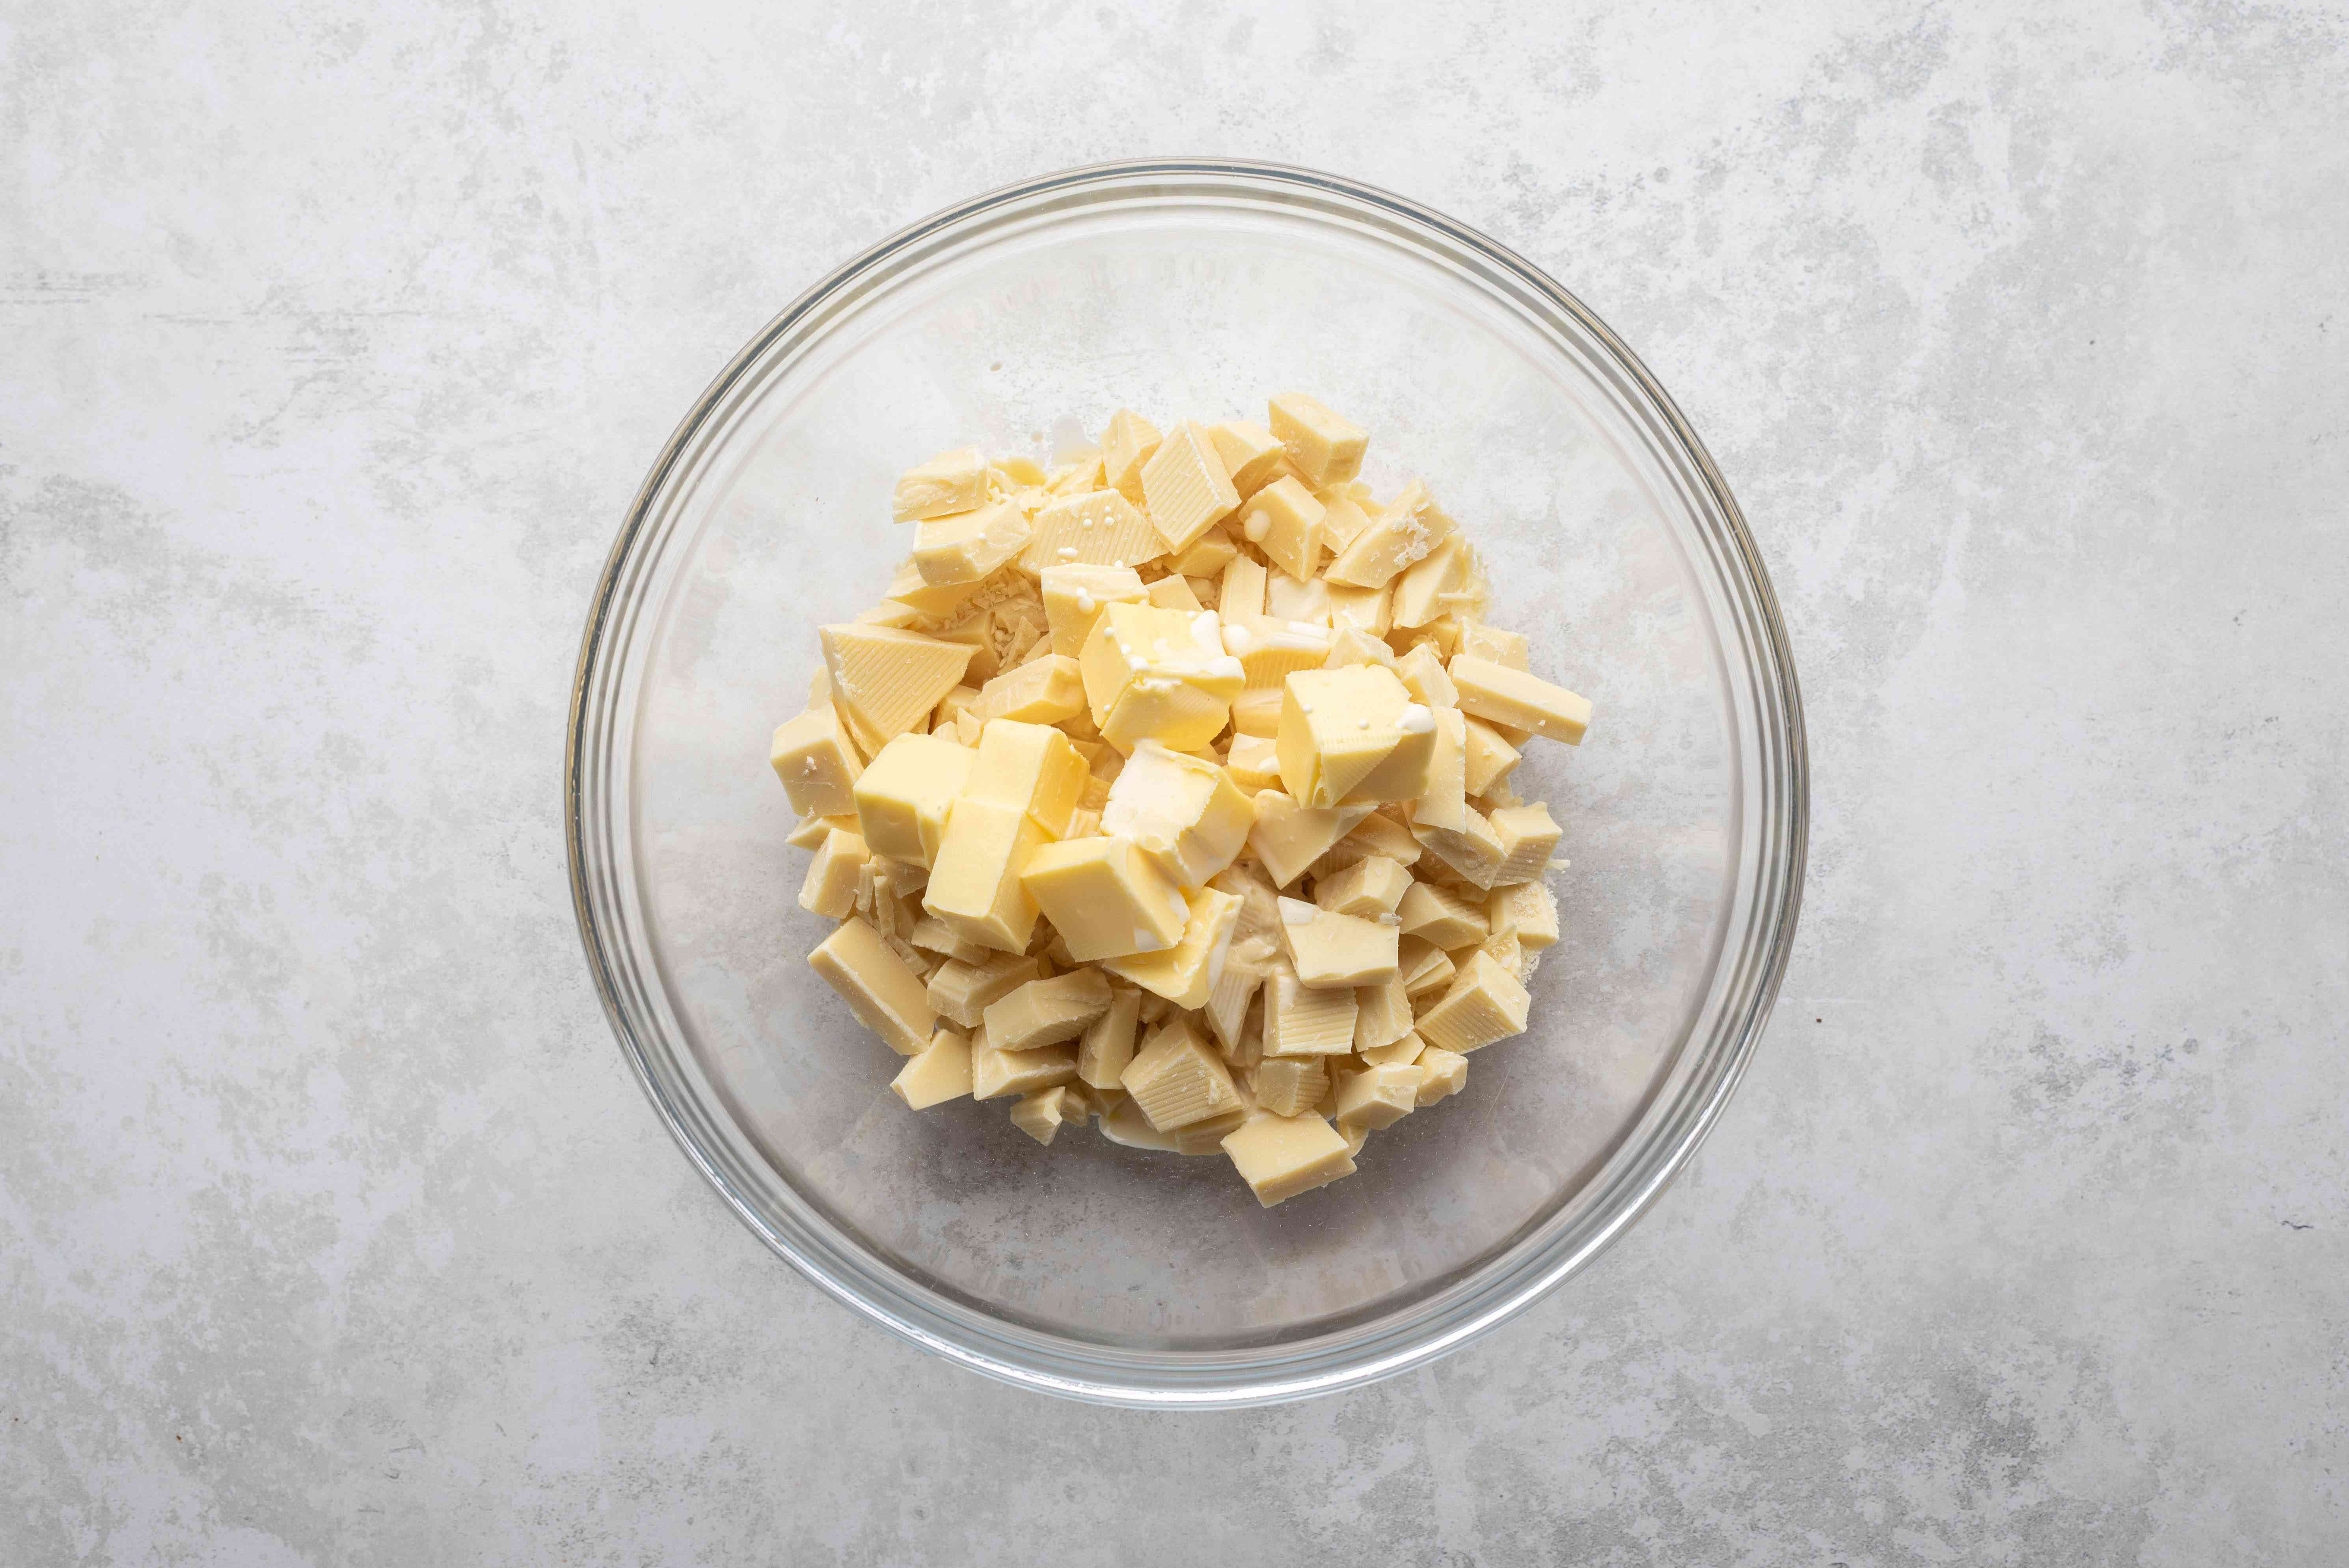 white chocolate, butter, heavy cream, and salt in a bowl